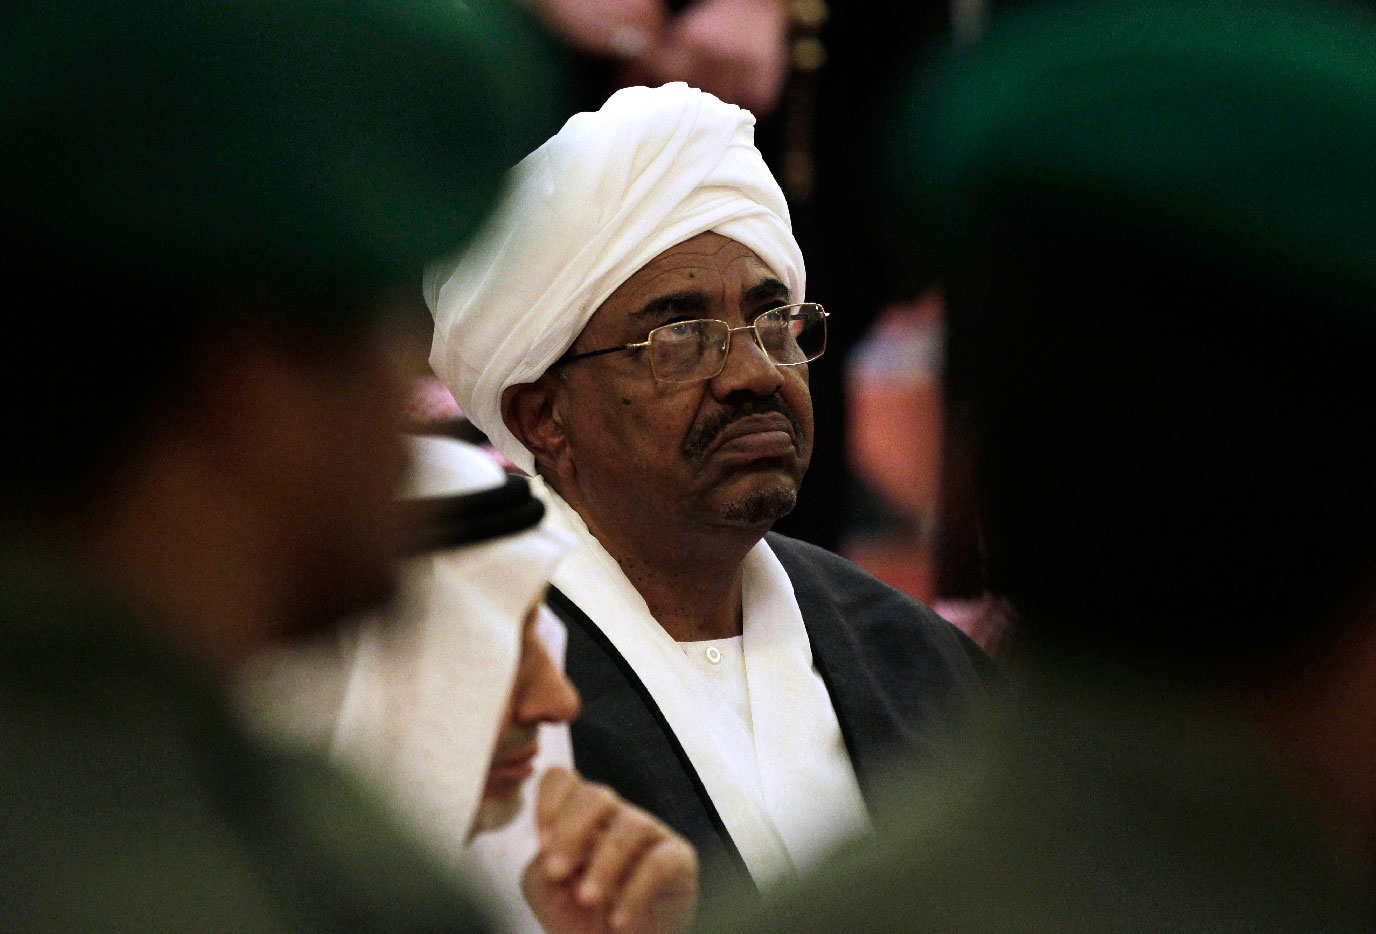 Sudanese President Omar al-Bashir attends the funeral of Saudi Crown Prince Sultan bin Abdul-Aziz Al Saud, in Riyadh, Saudi Arabia on Oct. 25, 2011.